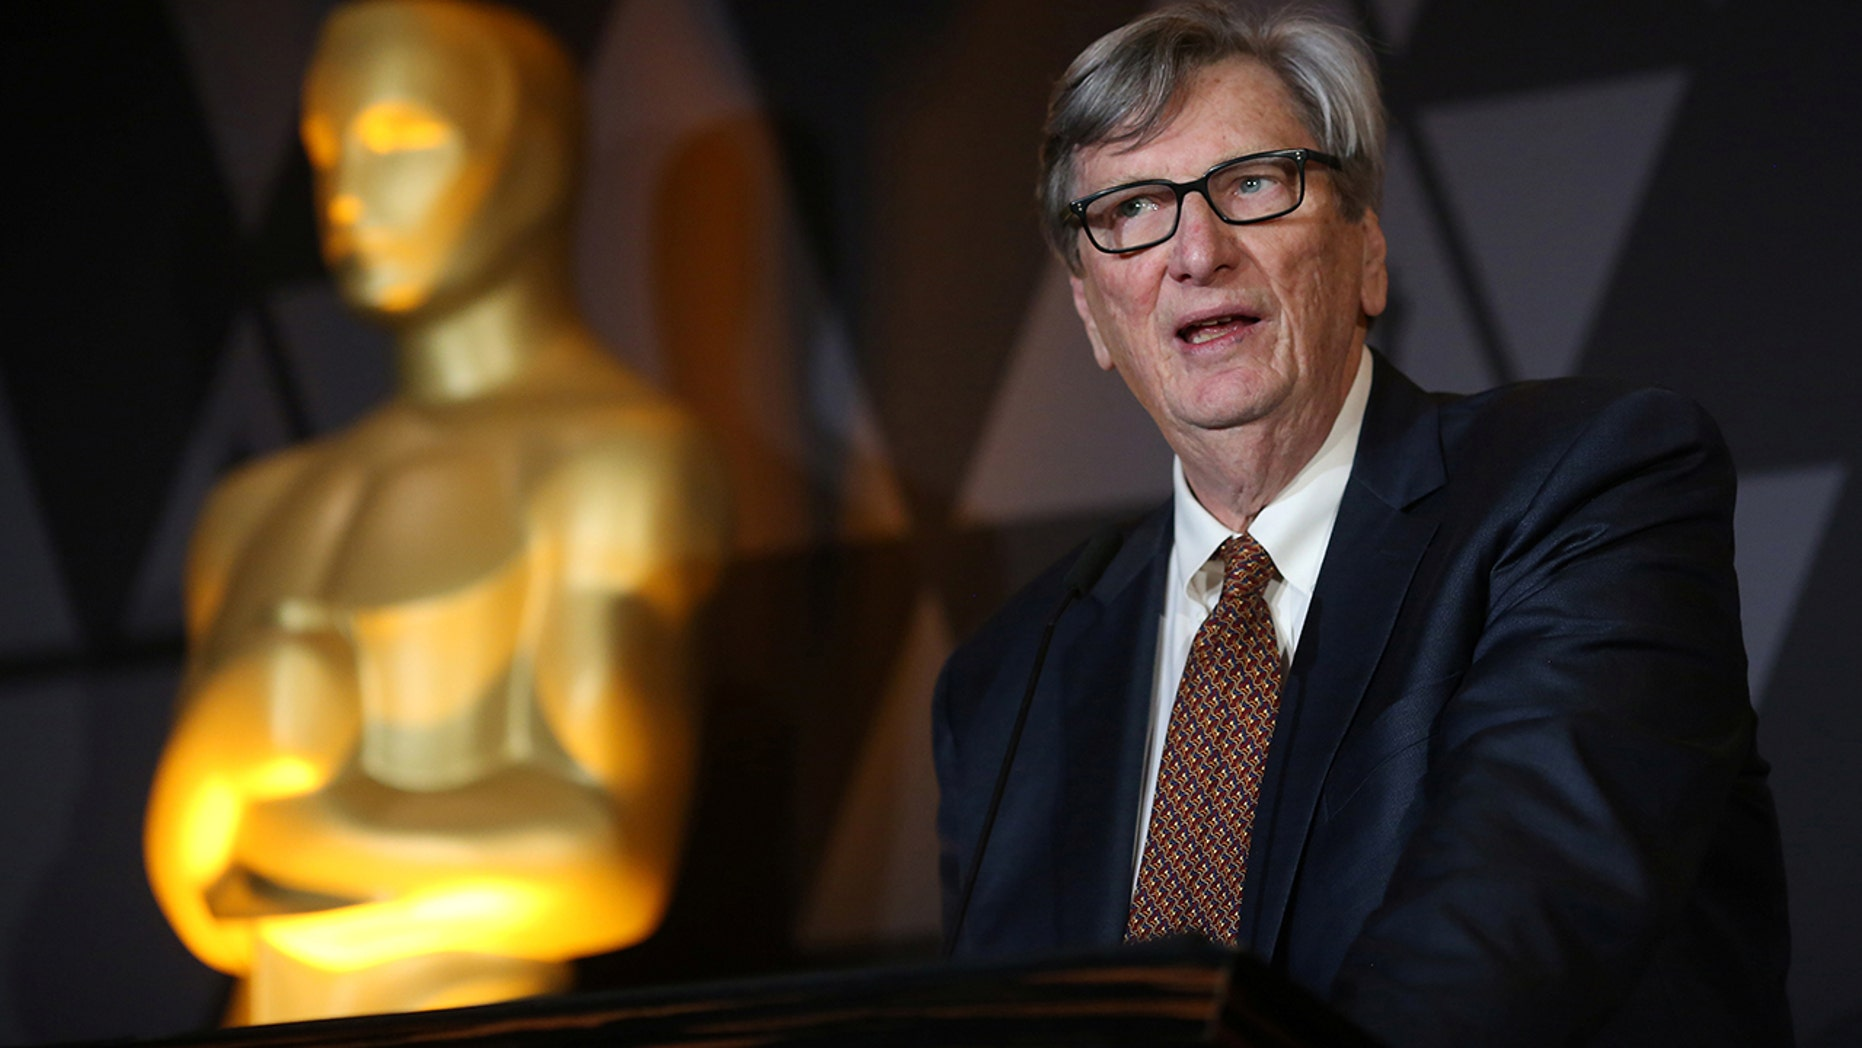 Motion Picture Academy President John Bailey speaks at the Foreign Language Film nominees cocktail reception in Beverly Hills, California, U.S., March 2, 2018.